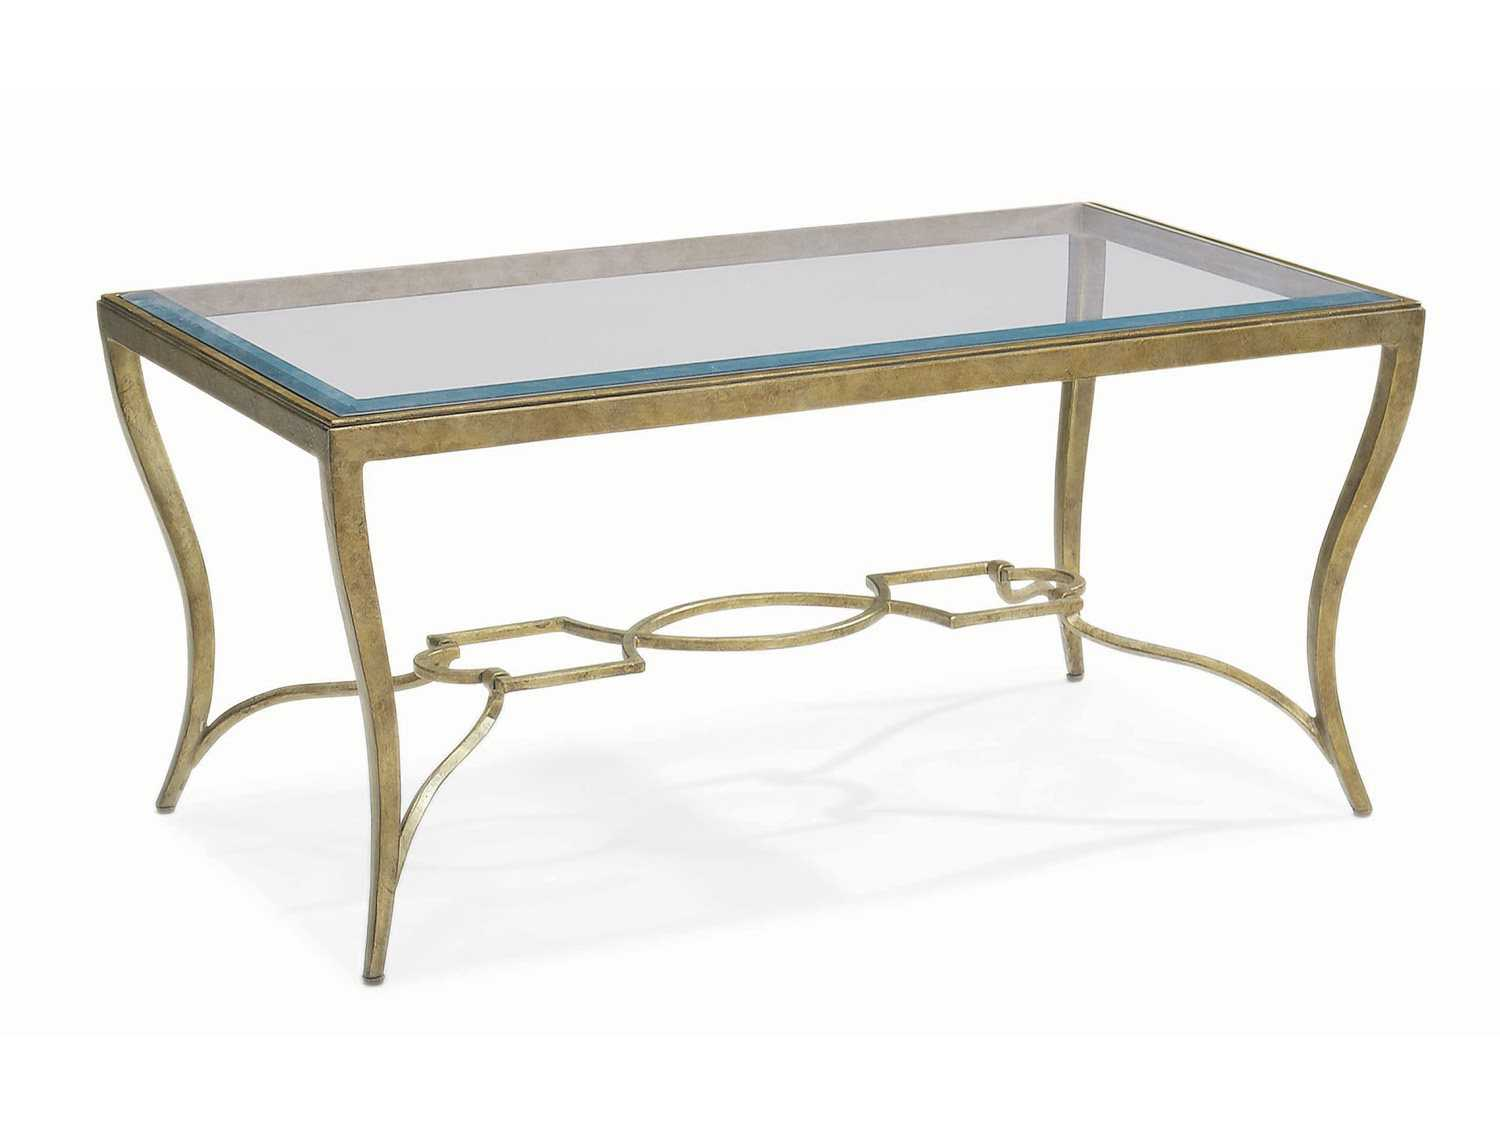 Bernhardt winslow 50 x 28 rectangular coffee table 500 021 Bernhardt coffee tables